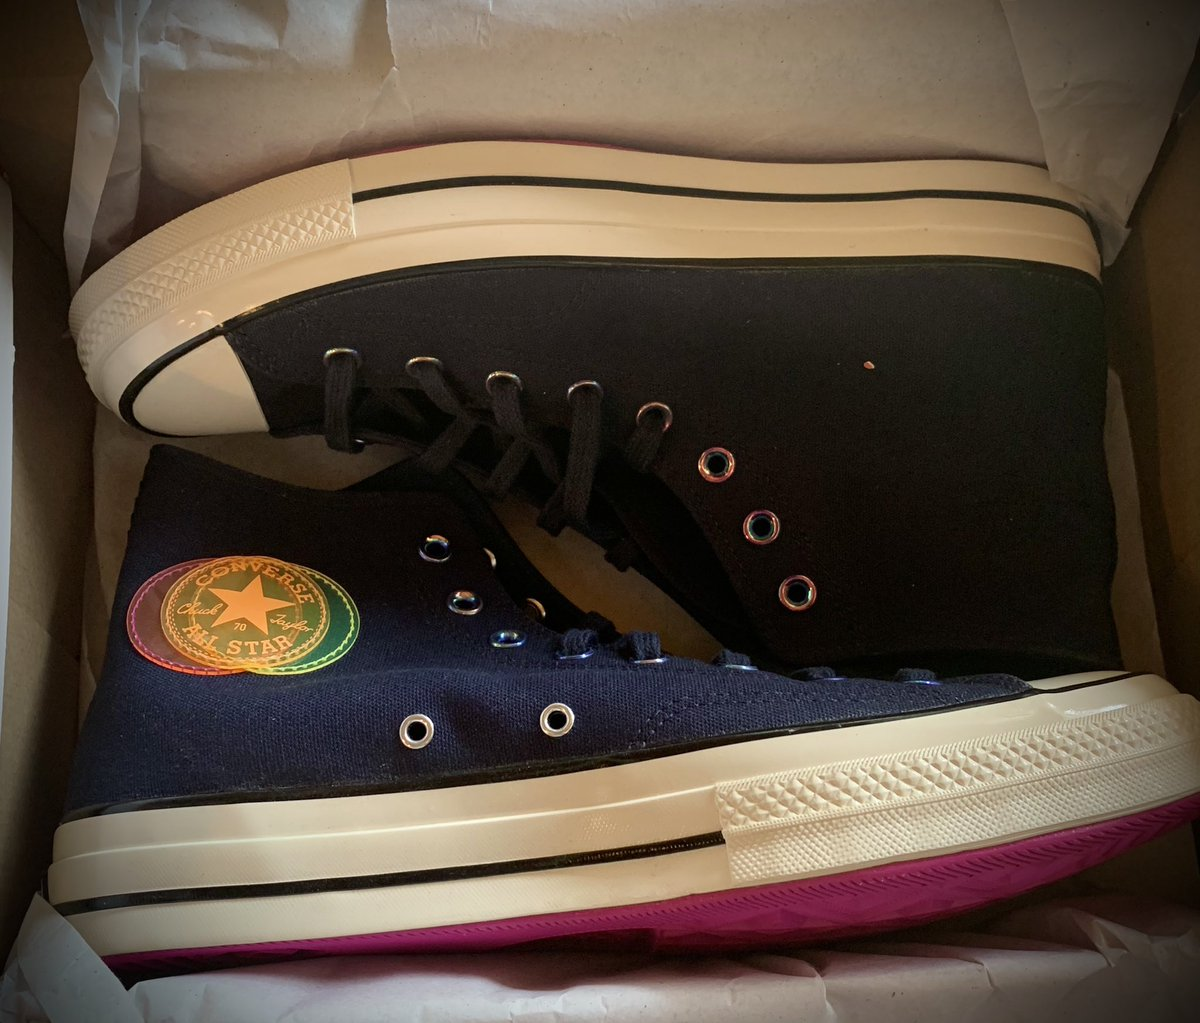 My new shoes arrived.